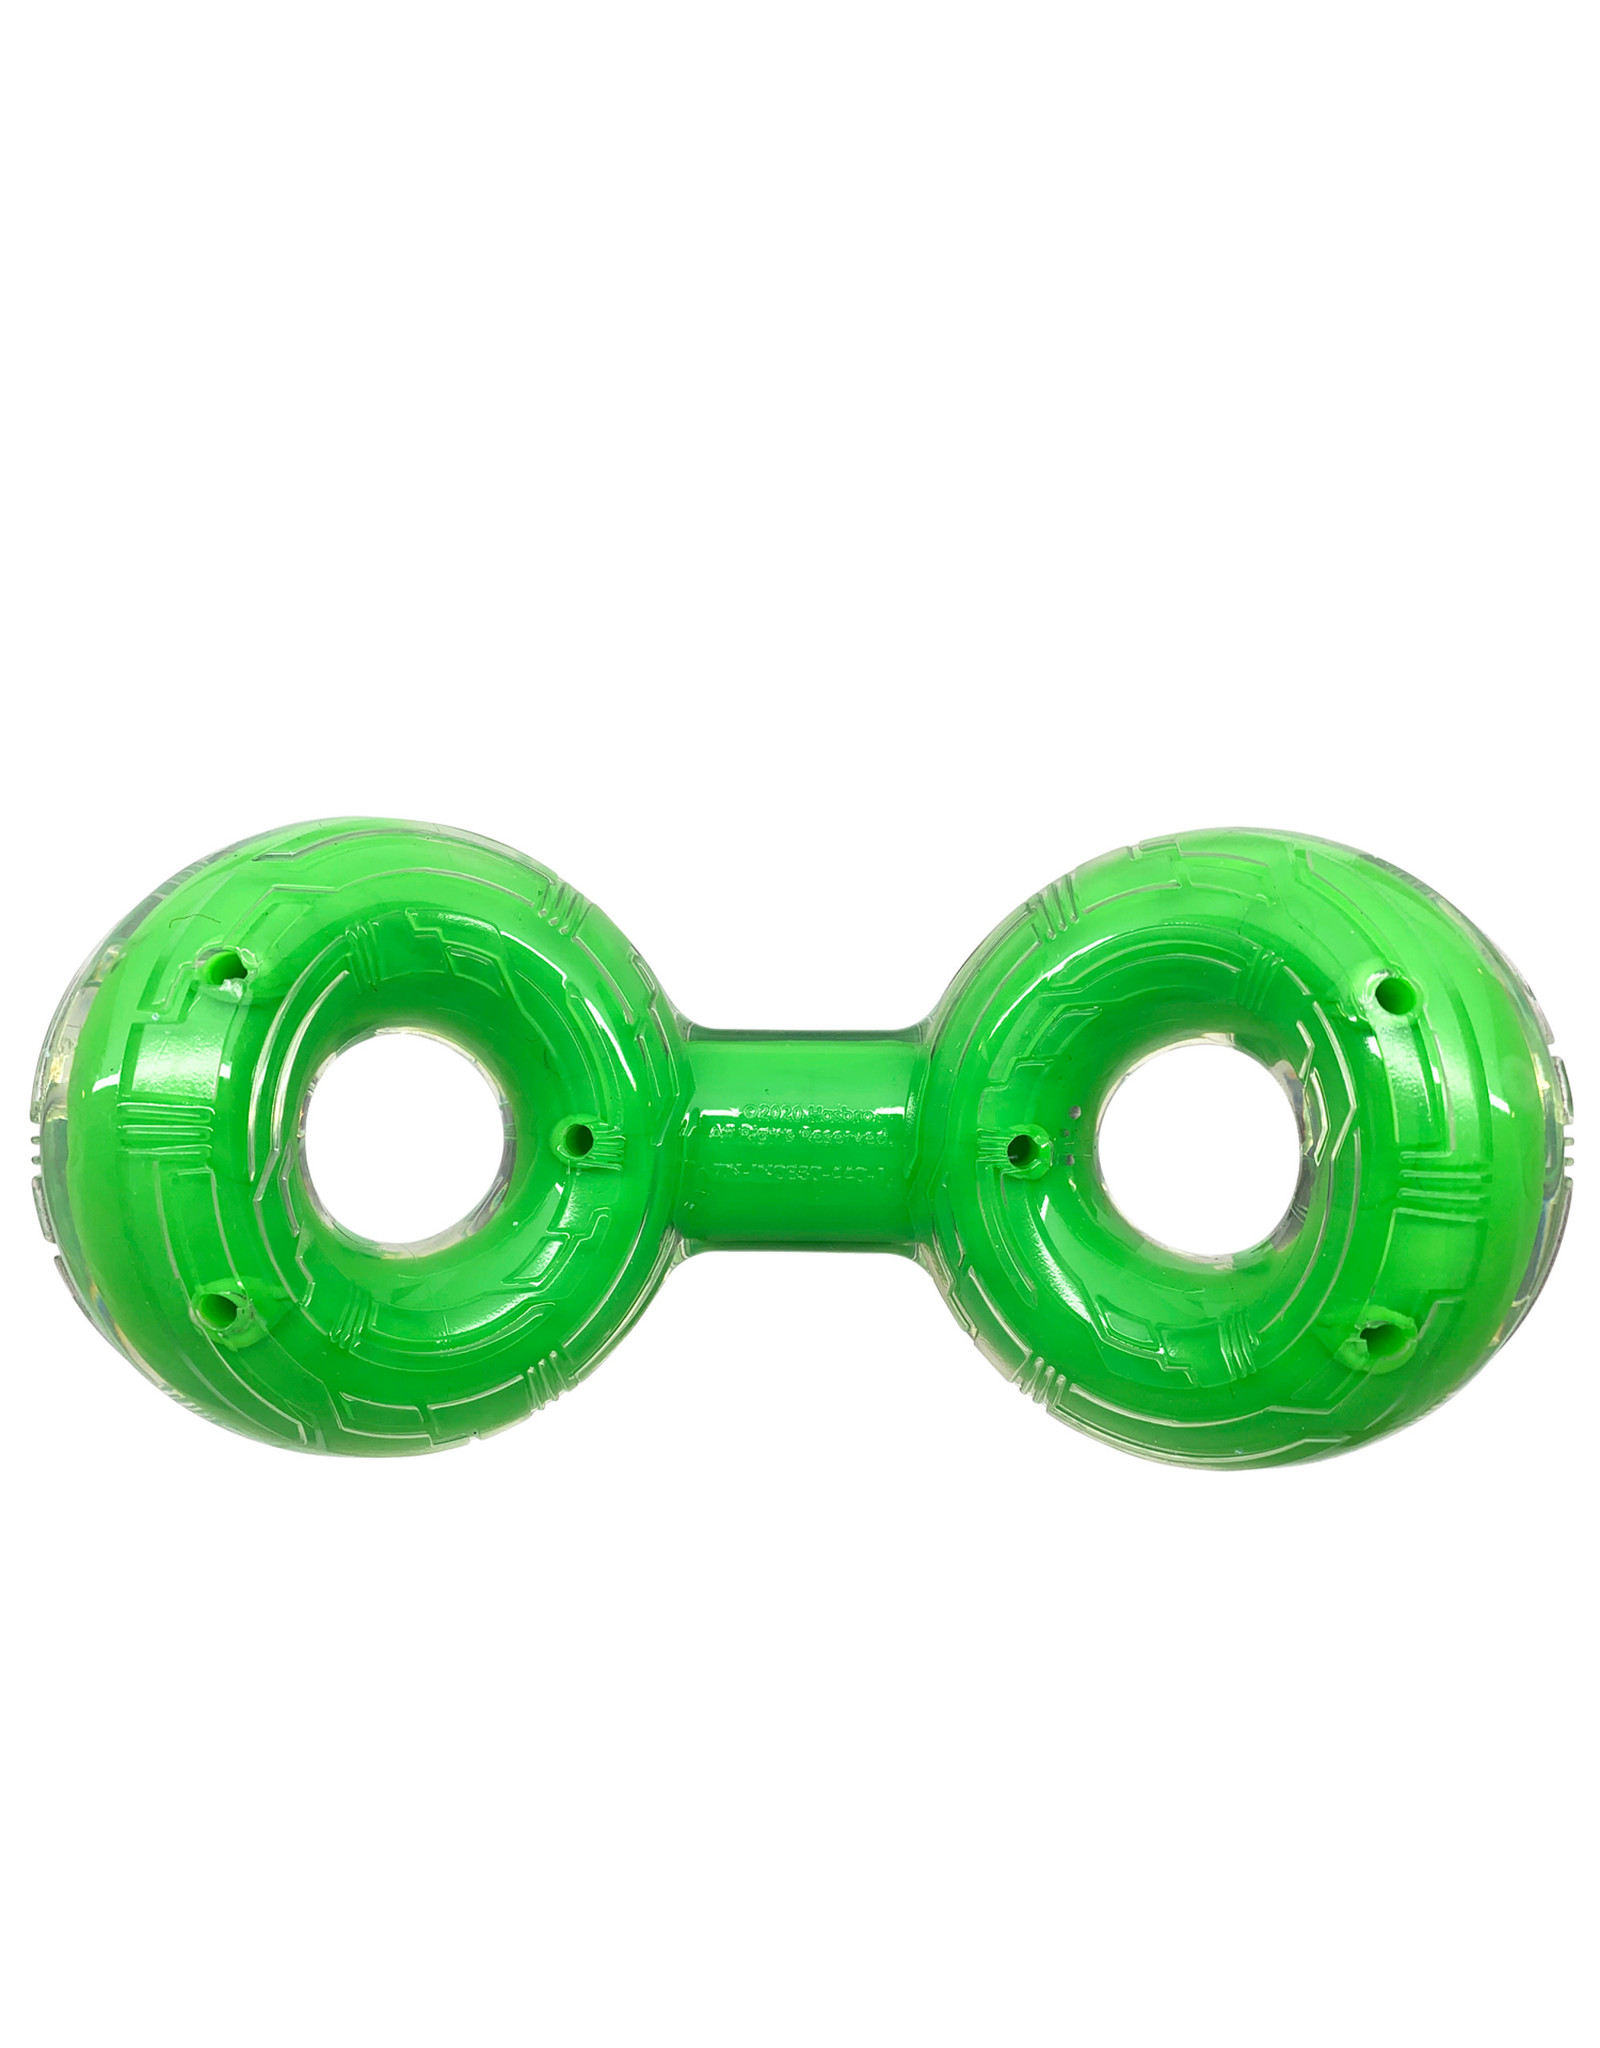 Nerf Nerf Dog Scentology Infinity Ring Beef Scent Green 21cm (8.3in)